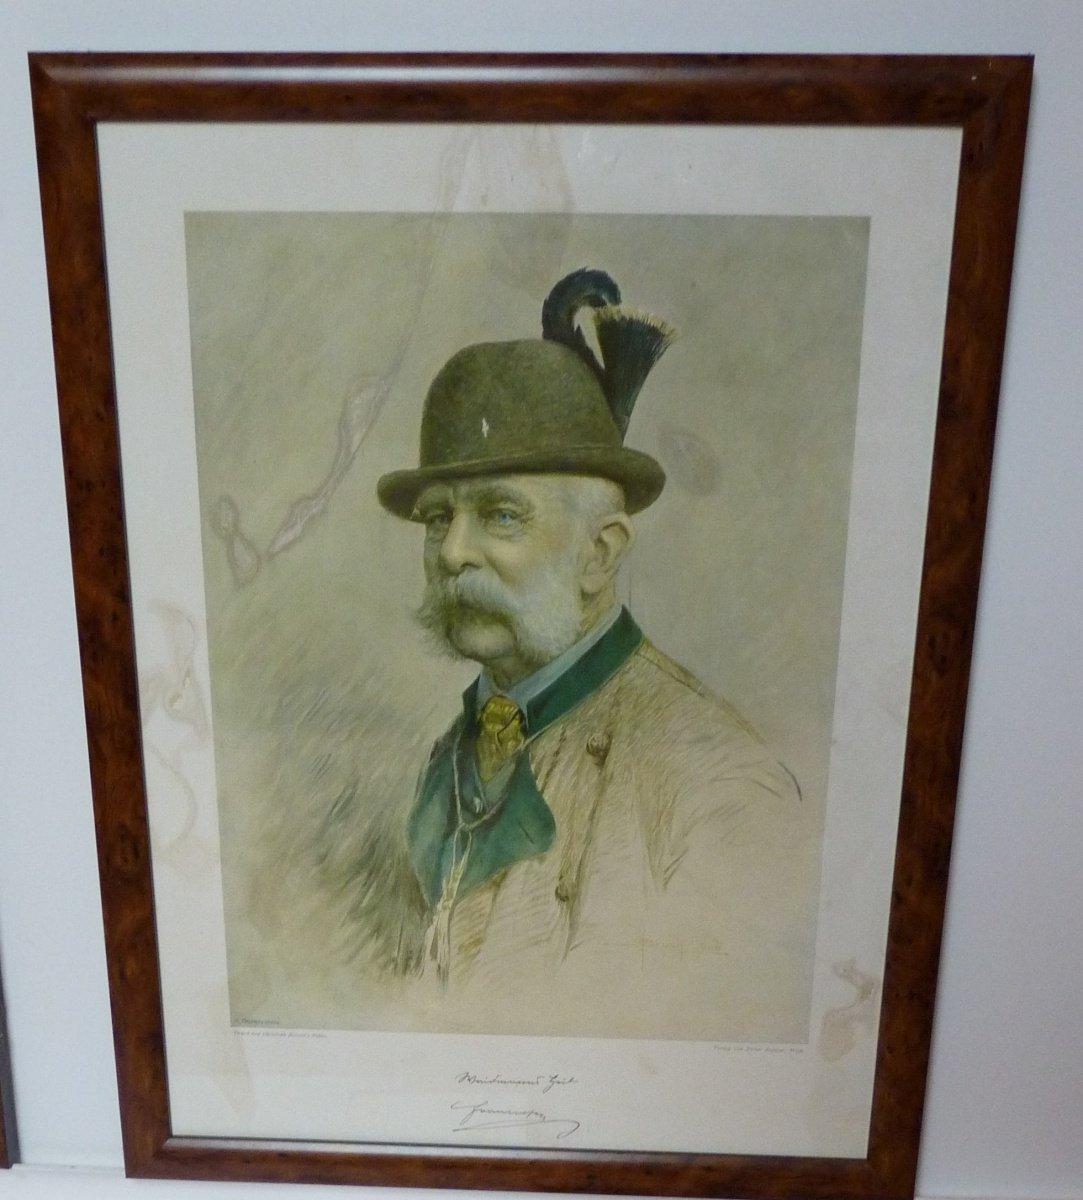 Franz Joseph in hunting attire